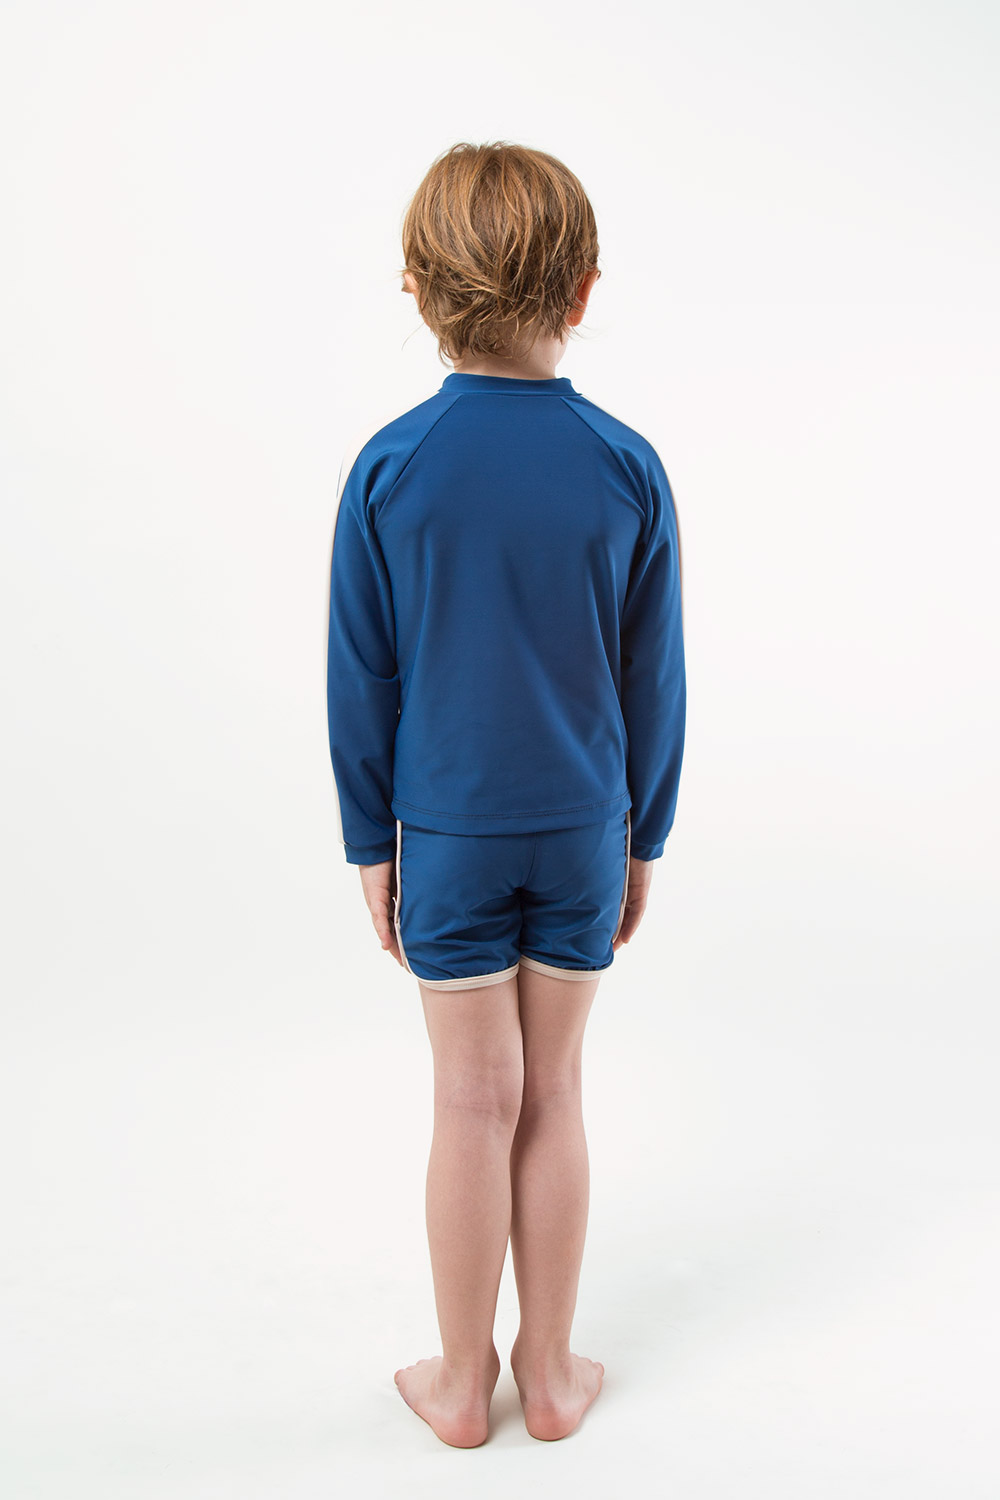 eco friendly rash guard and short blue. Front zipper, boy view